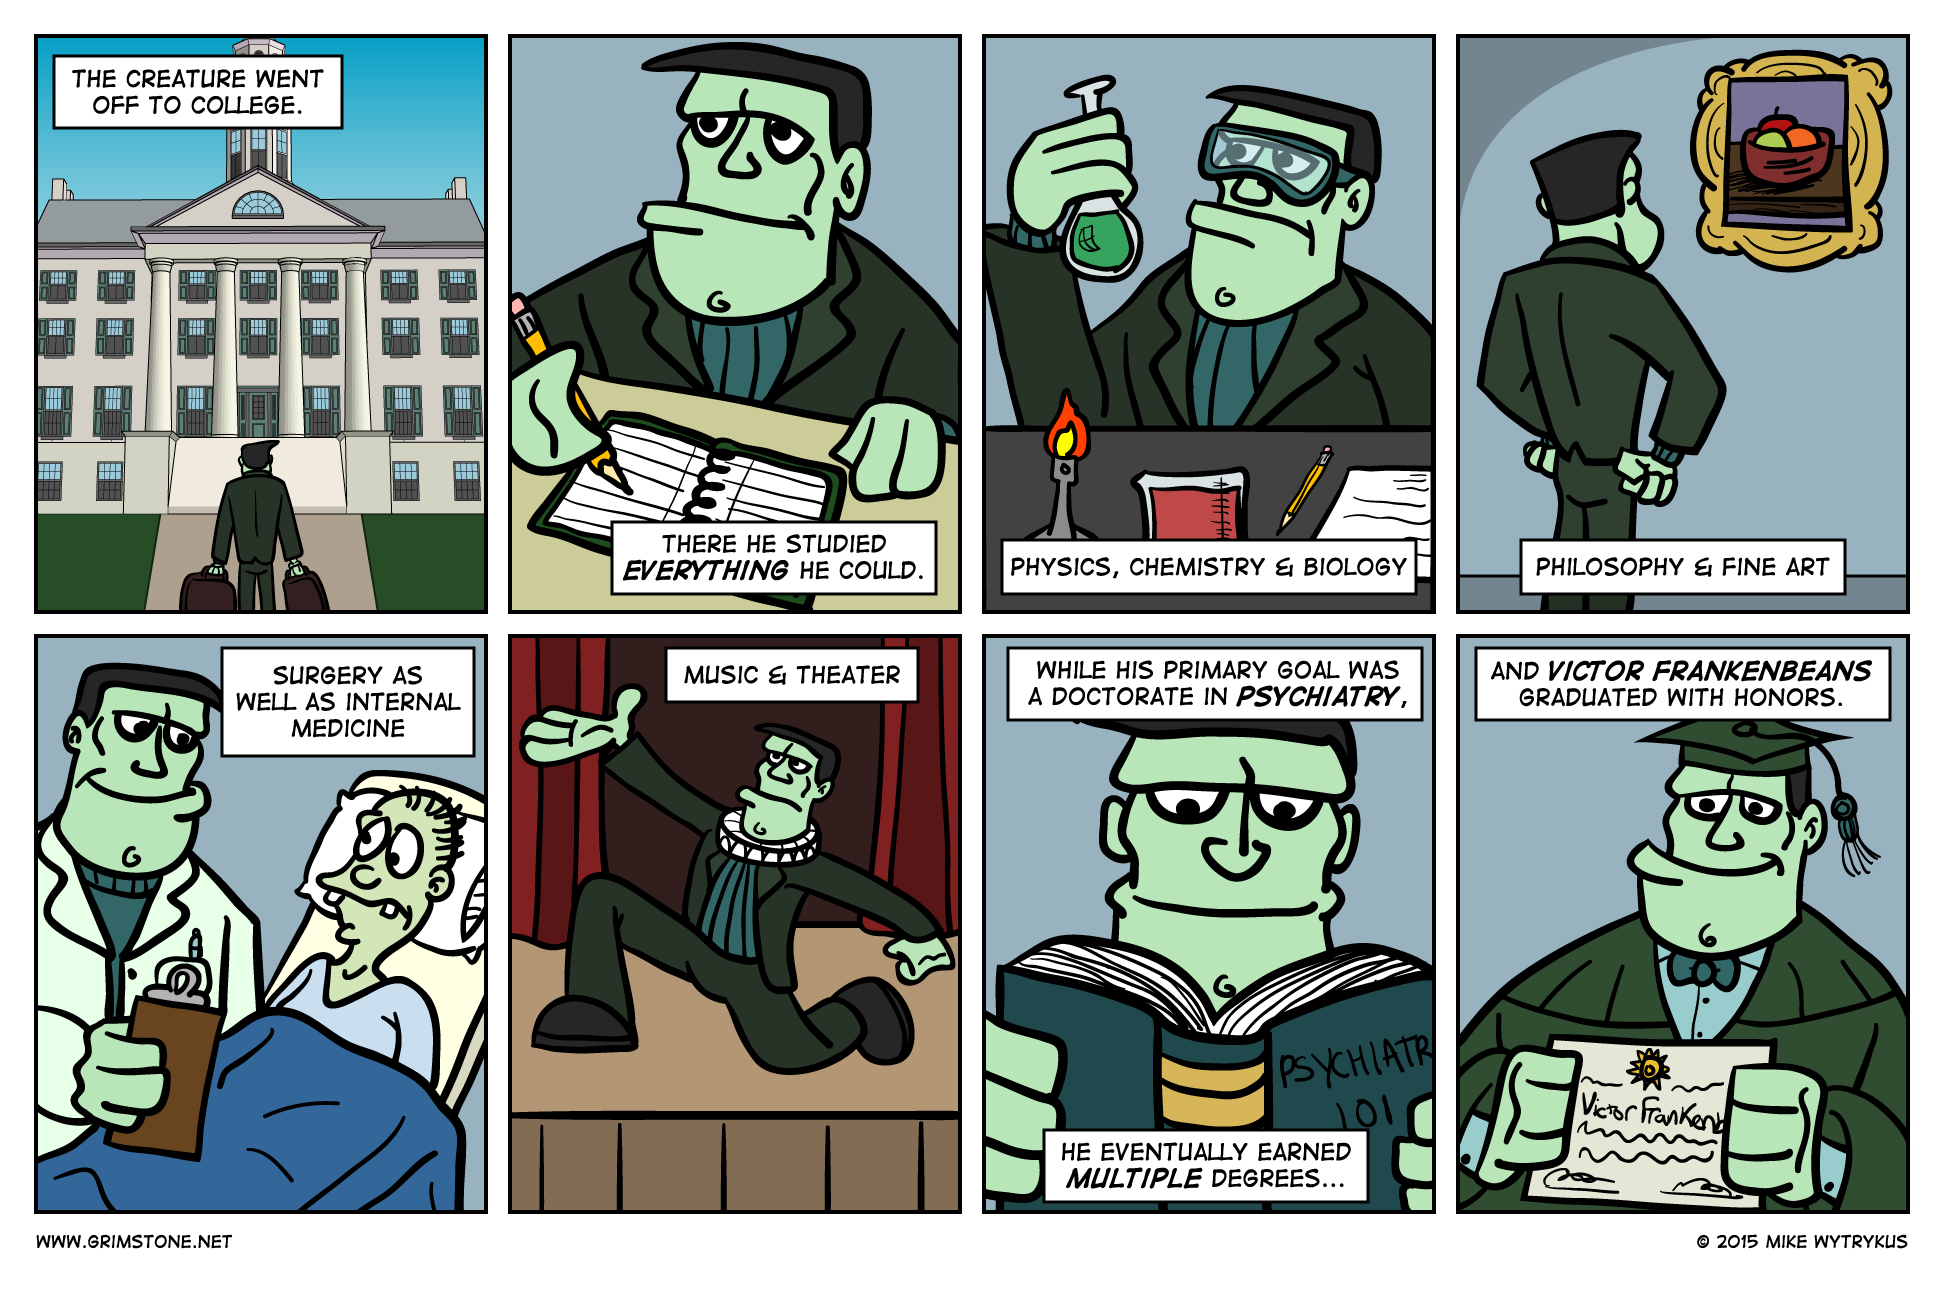 Son of Frankenbeans» Page 17